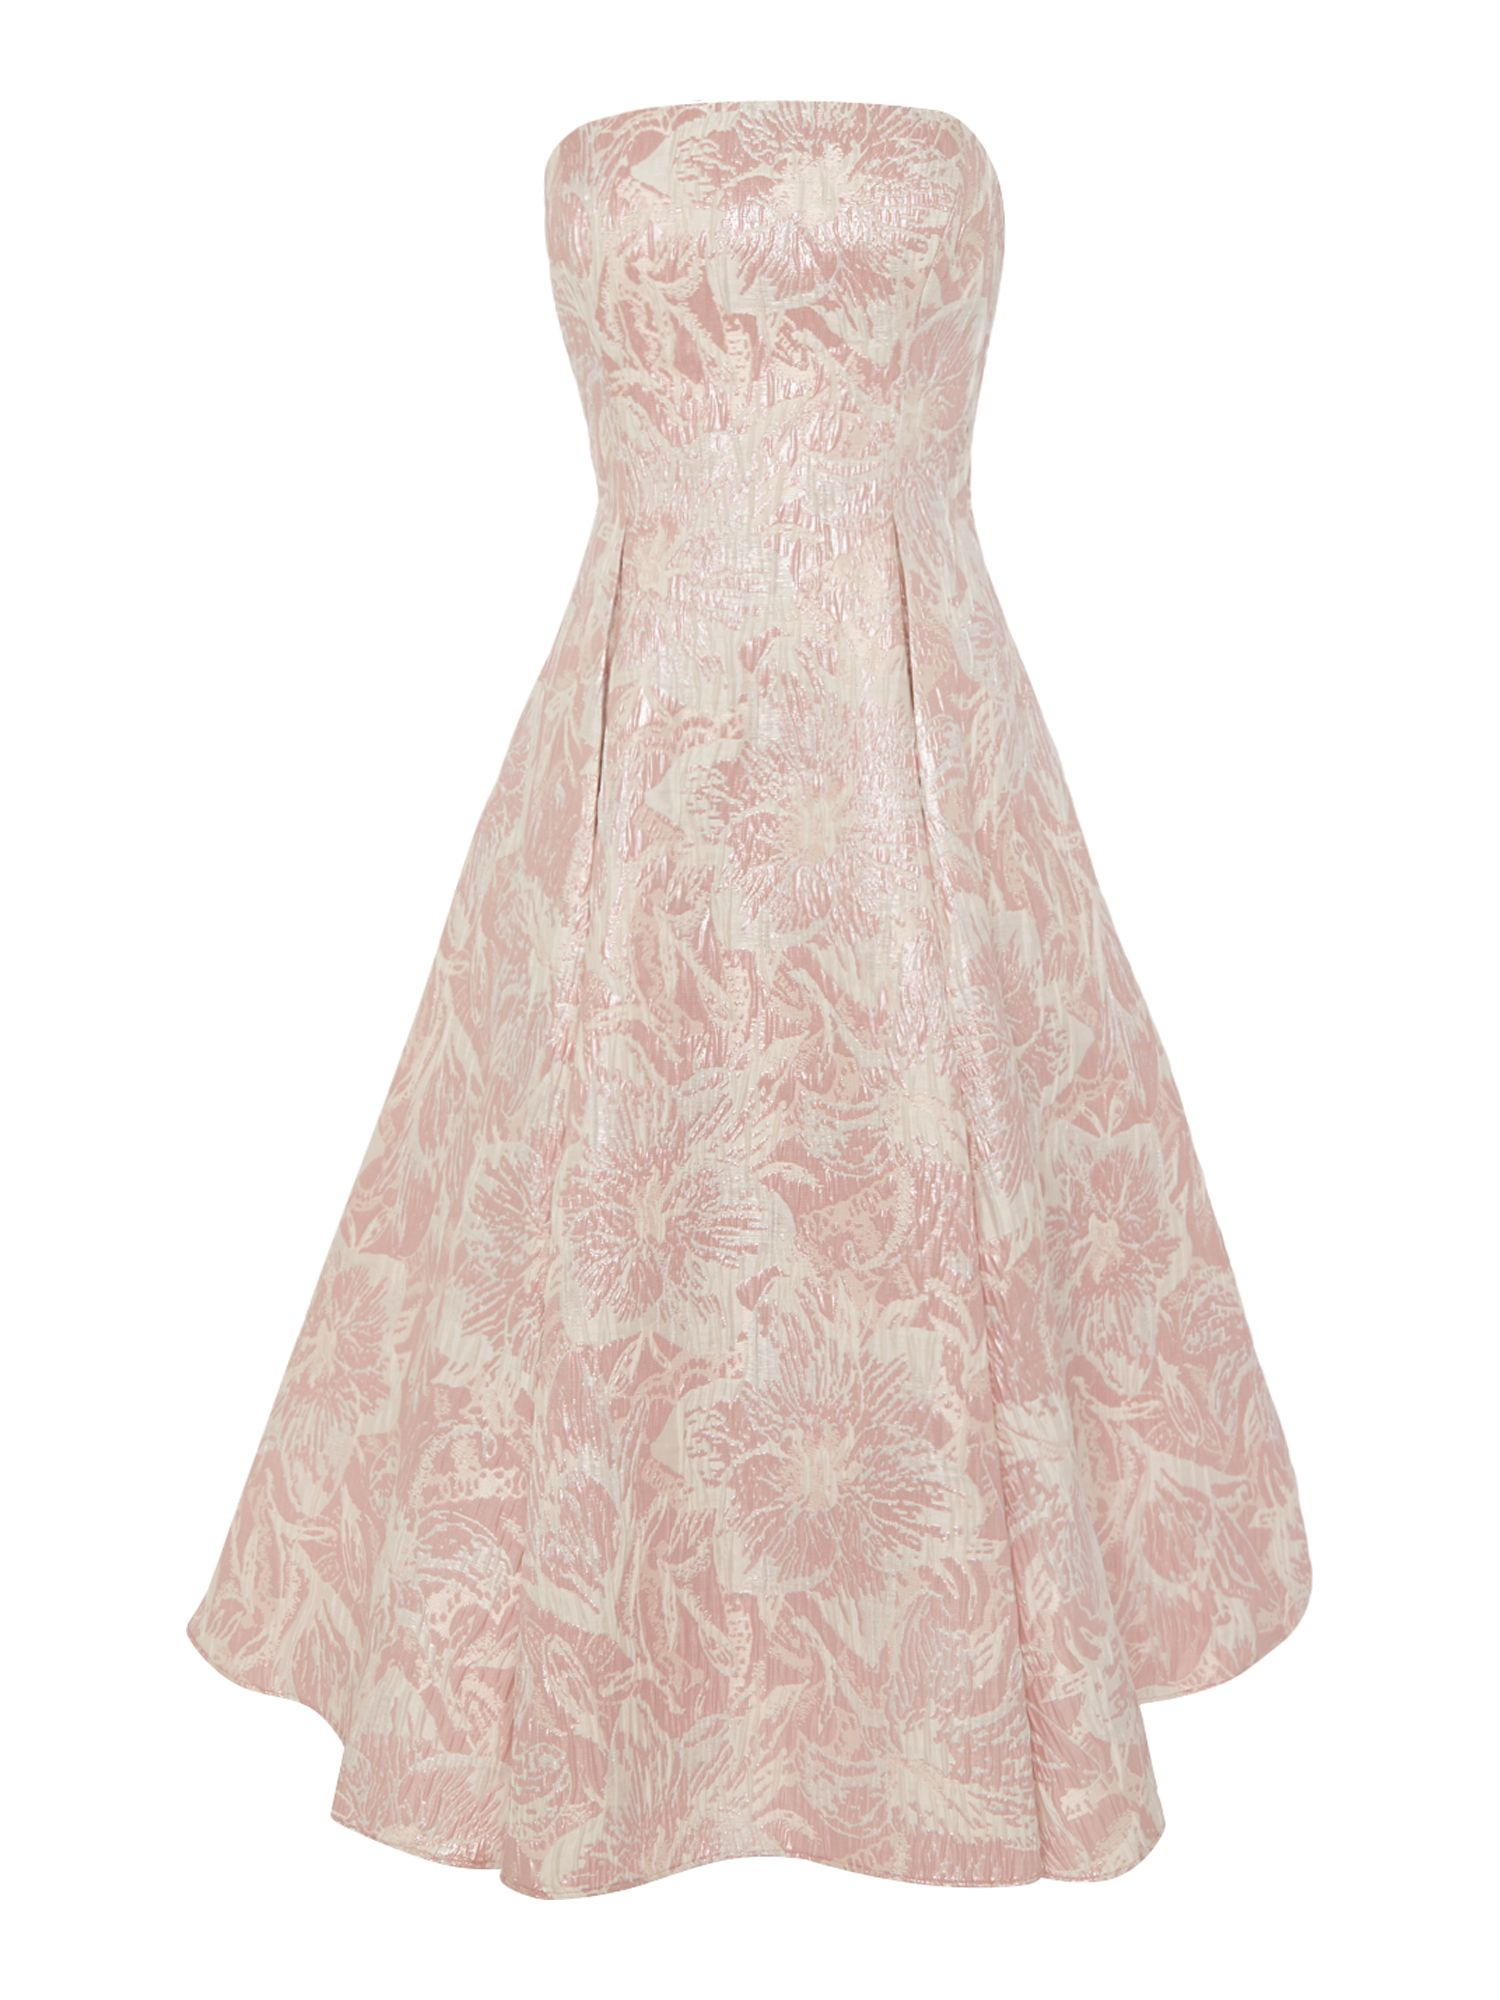 Adrianna Papell Strapless floral jacquard midi dress $210.00 AT vintagedancer.com